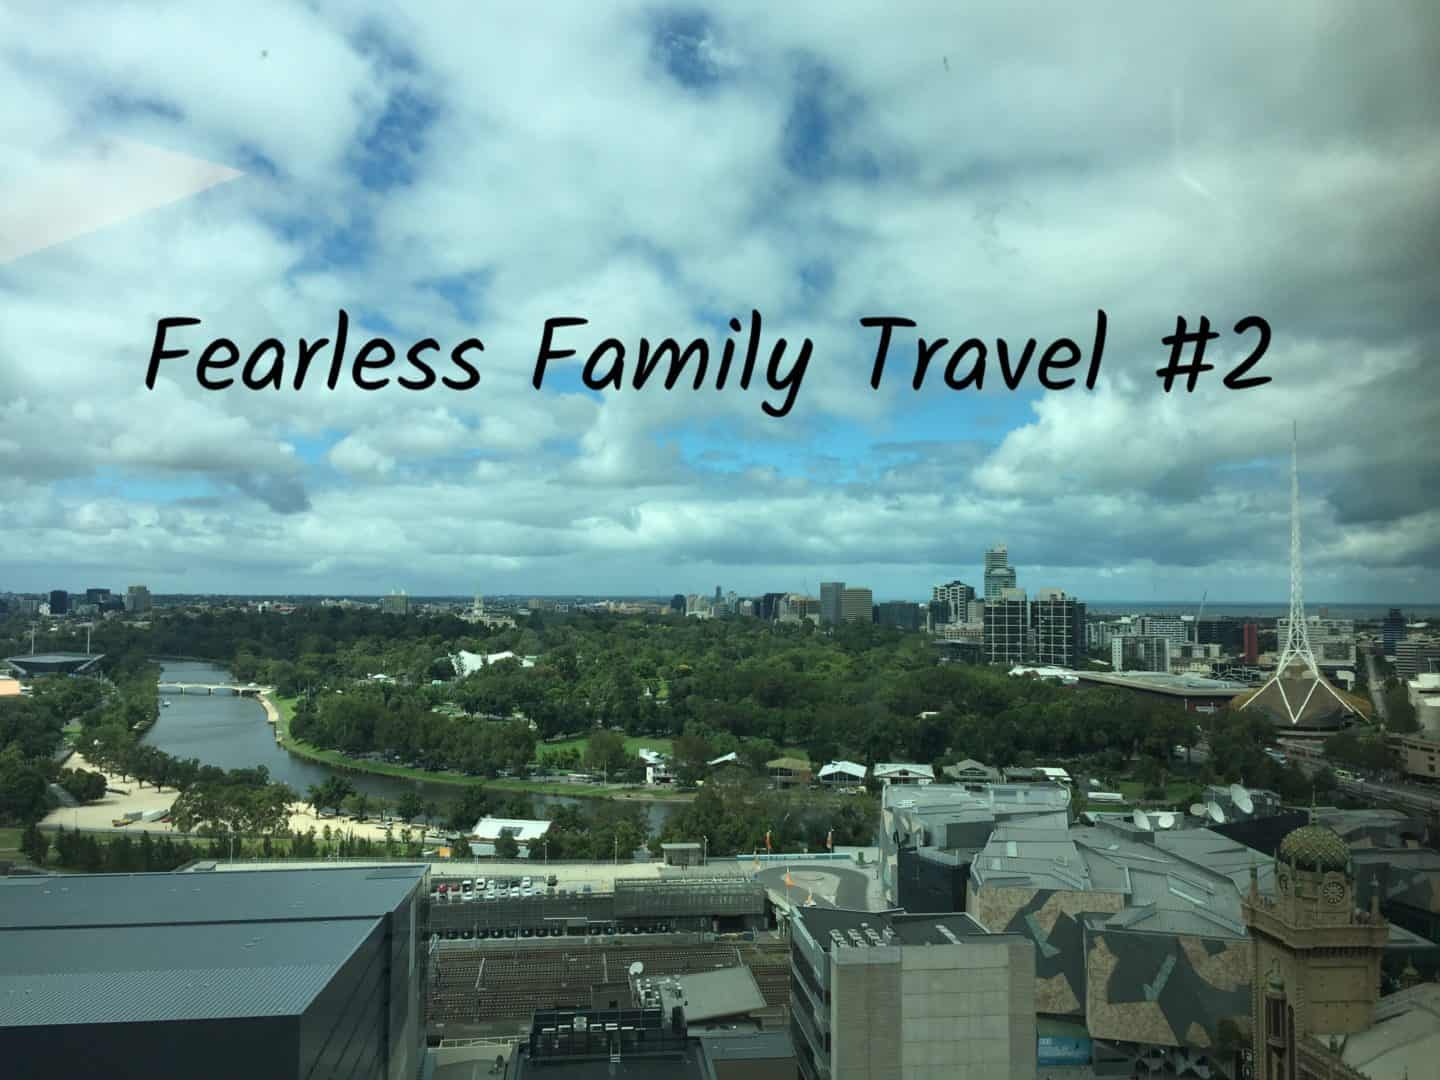 Fearless Family Travel #2